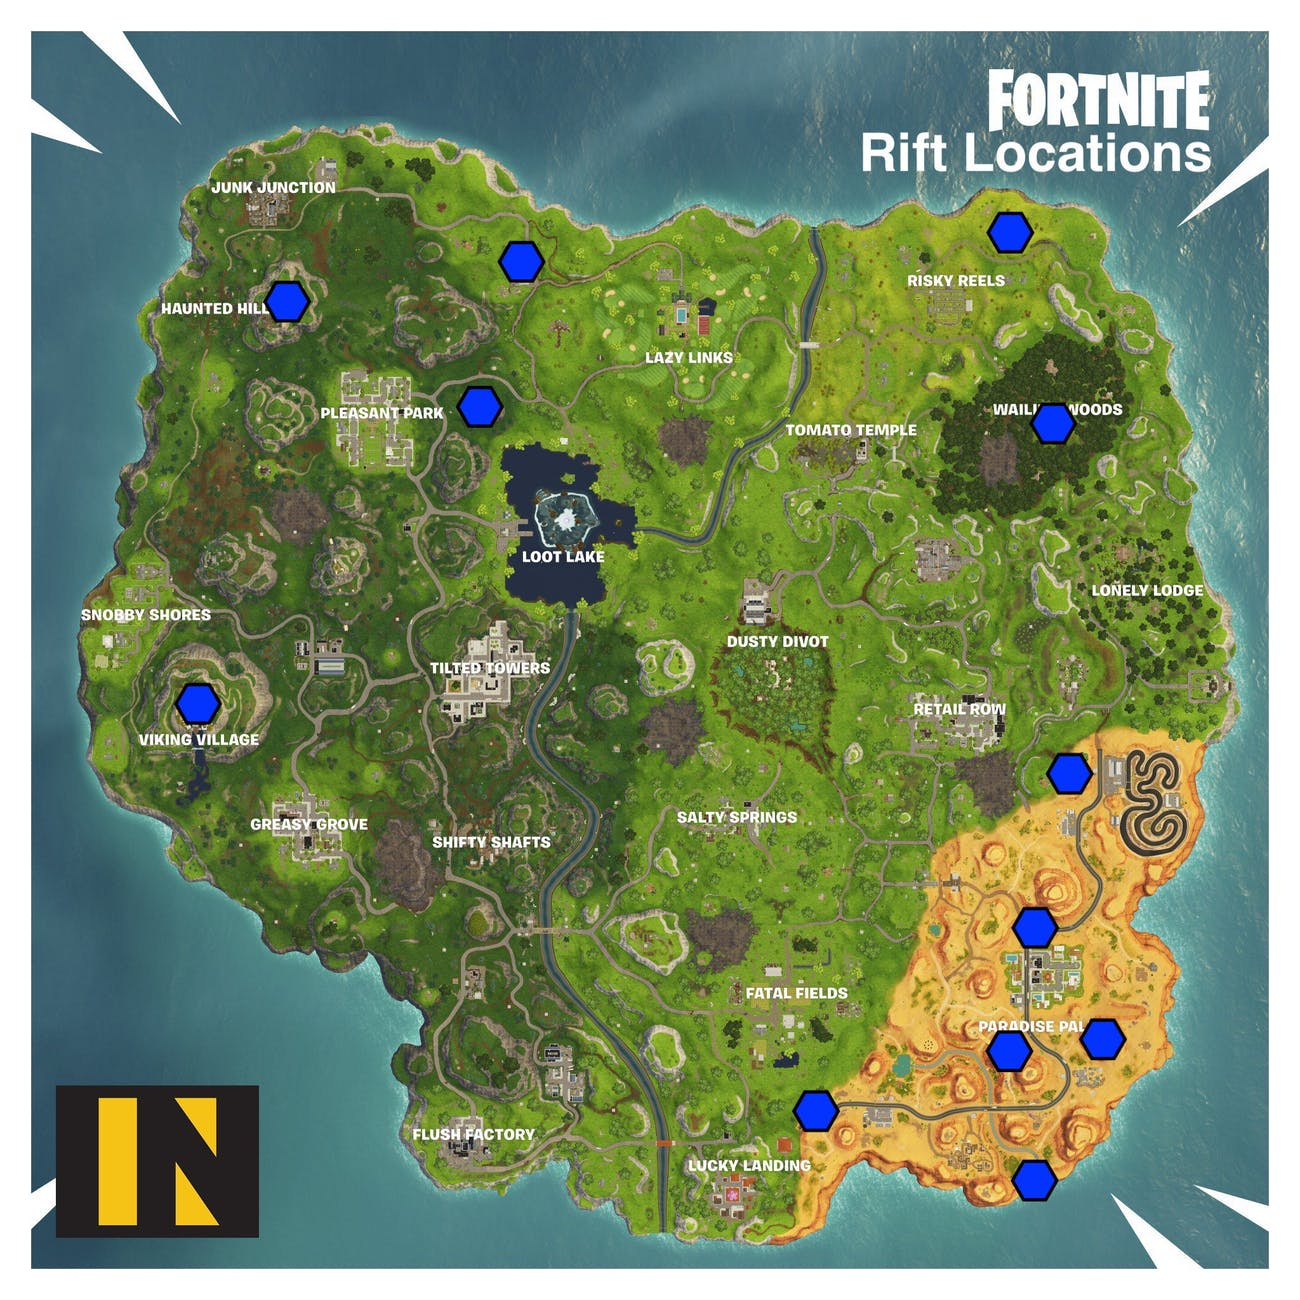 'Fortnite' Season 6 Rift Locations